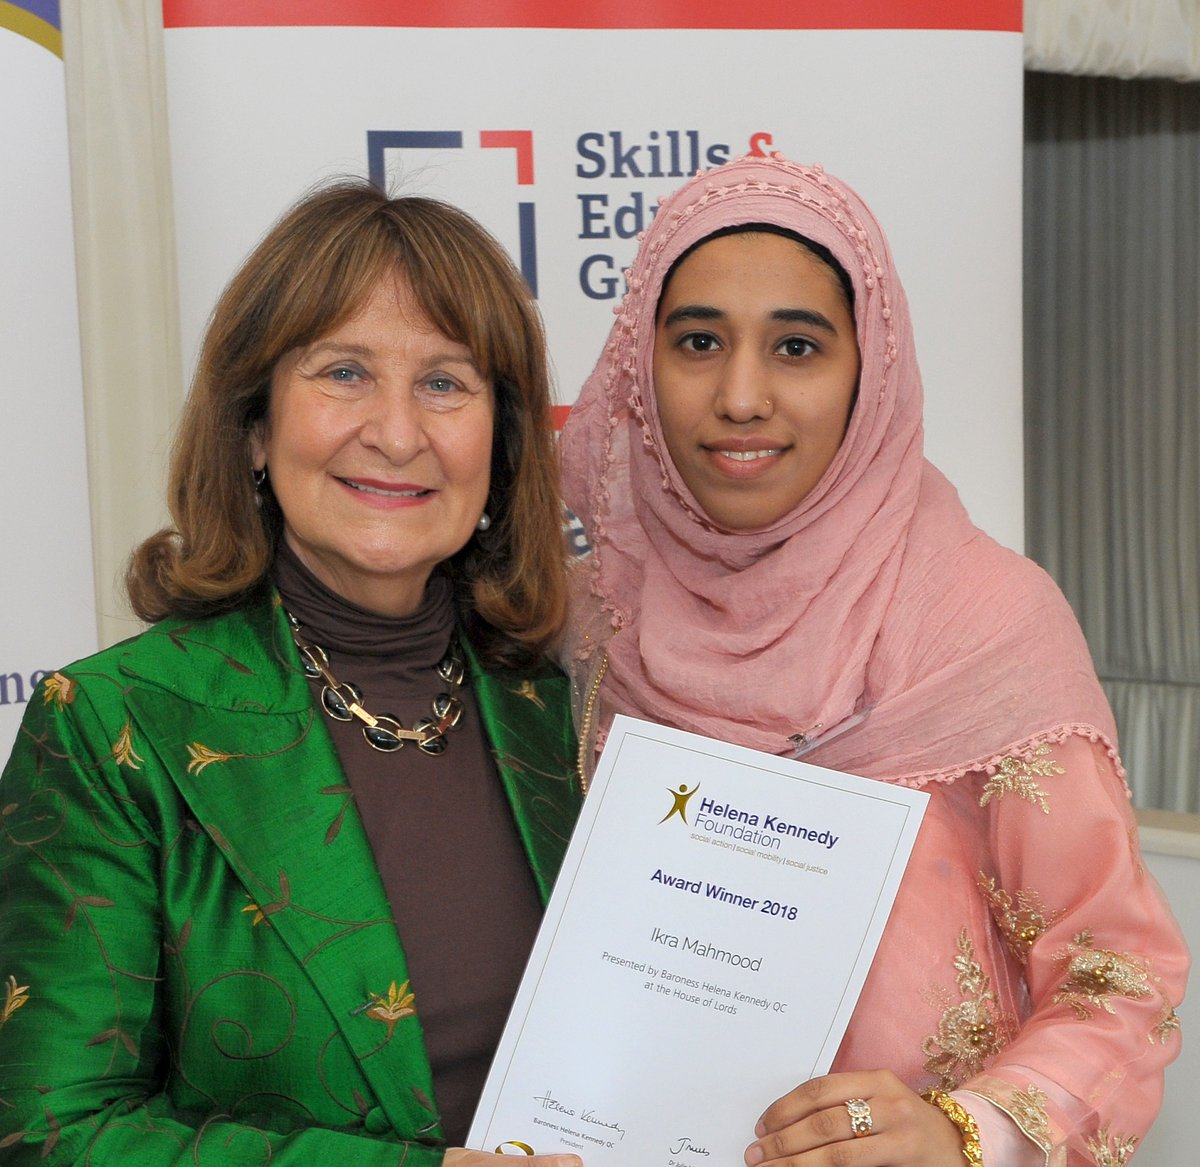 We are currently accepting applications for FE students going to @UniofNottingham in Sept 2020.  Ikra was one of our fantastic recipients in 2018 and recieved £2,250.  For more info and to apply please visit us at https://t.co/ktWkEqJBfK https://t.co/0OFKNX7AF9